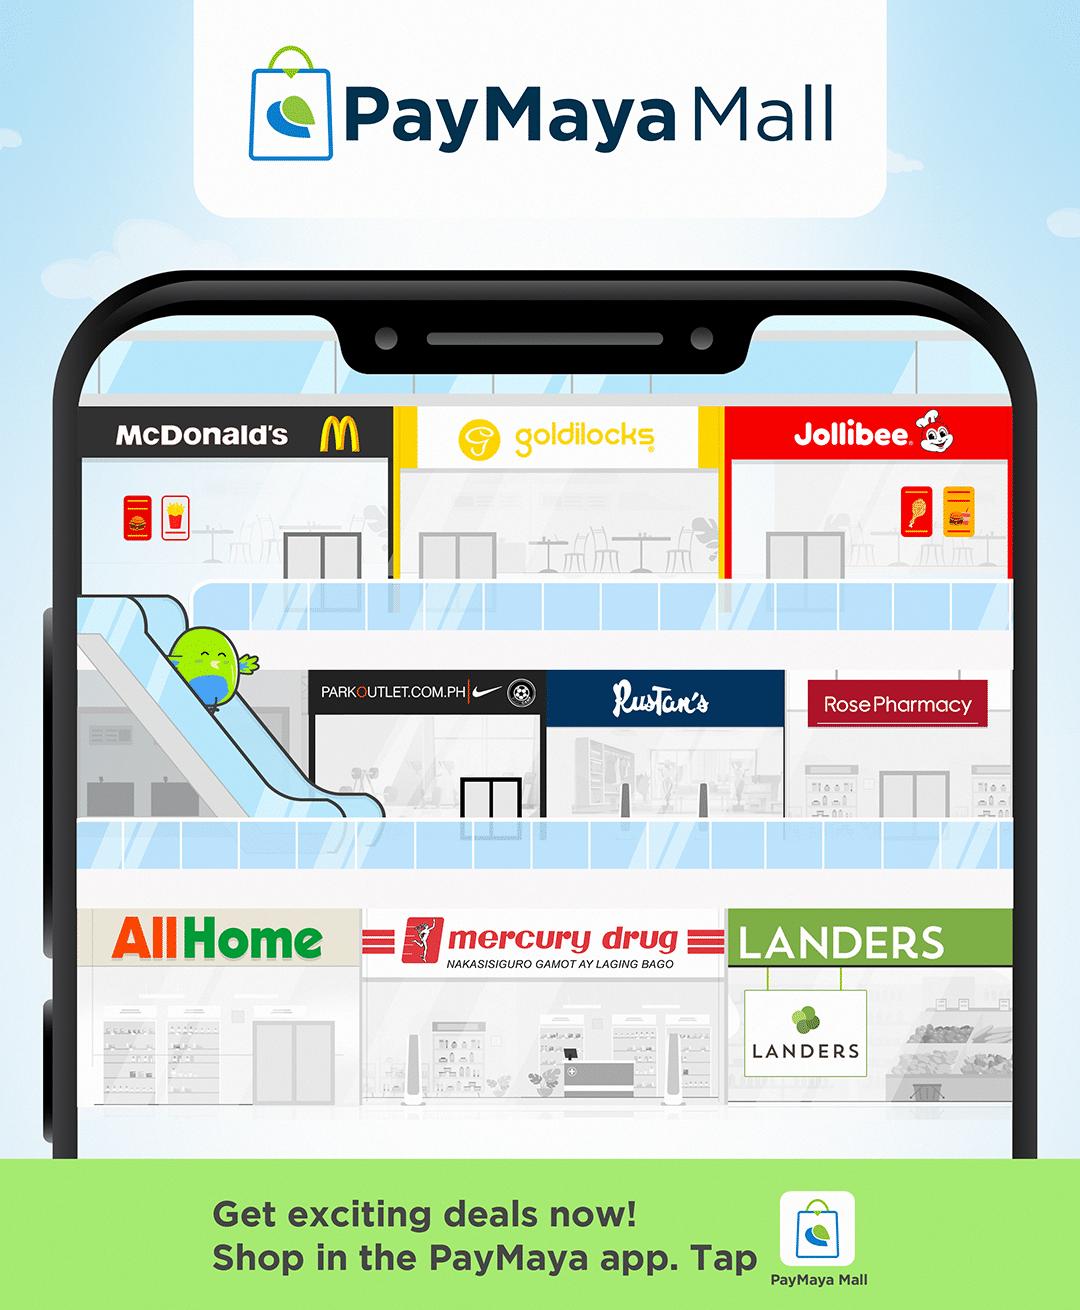 Shop for your everyday essentials and more at the PayMaya Mall!